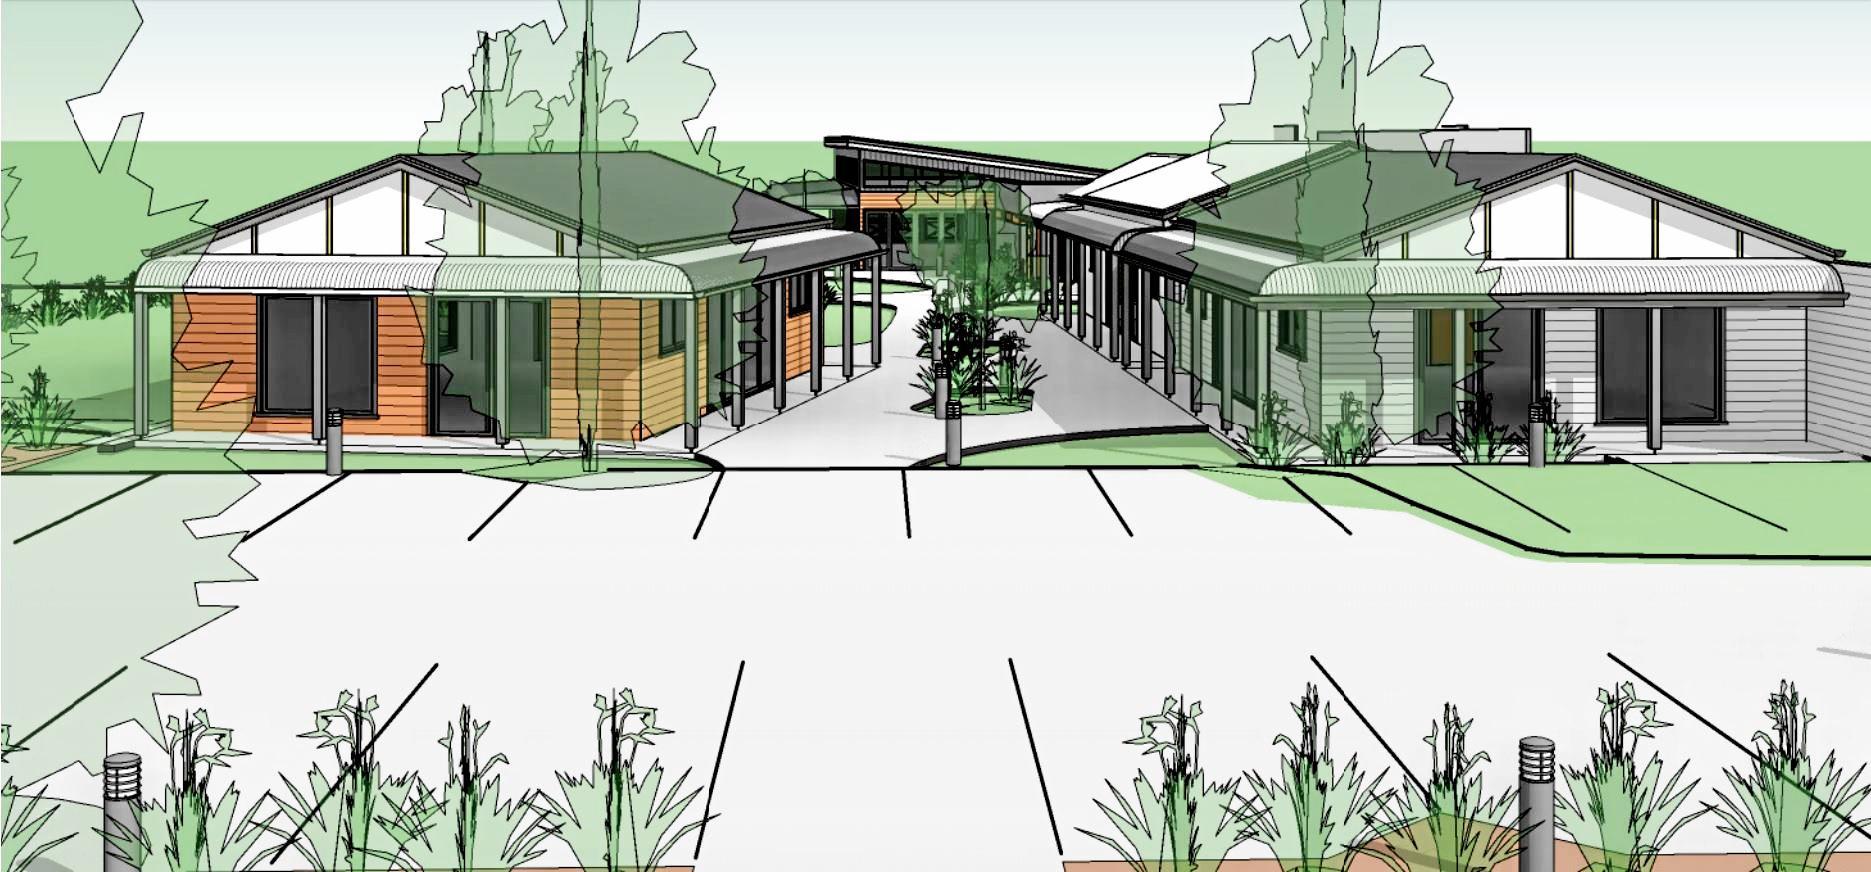 NOT A PUB: Concept designs for a bar and restaurant in Highfields, which is being submitted to the council as a 'hotel'.